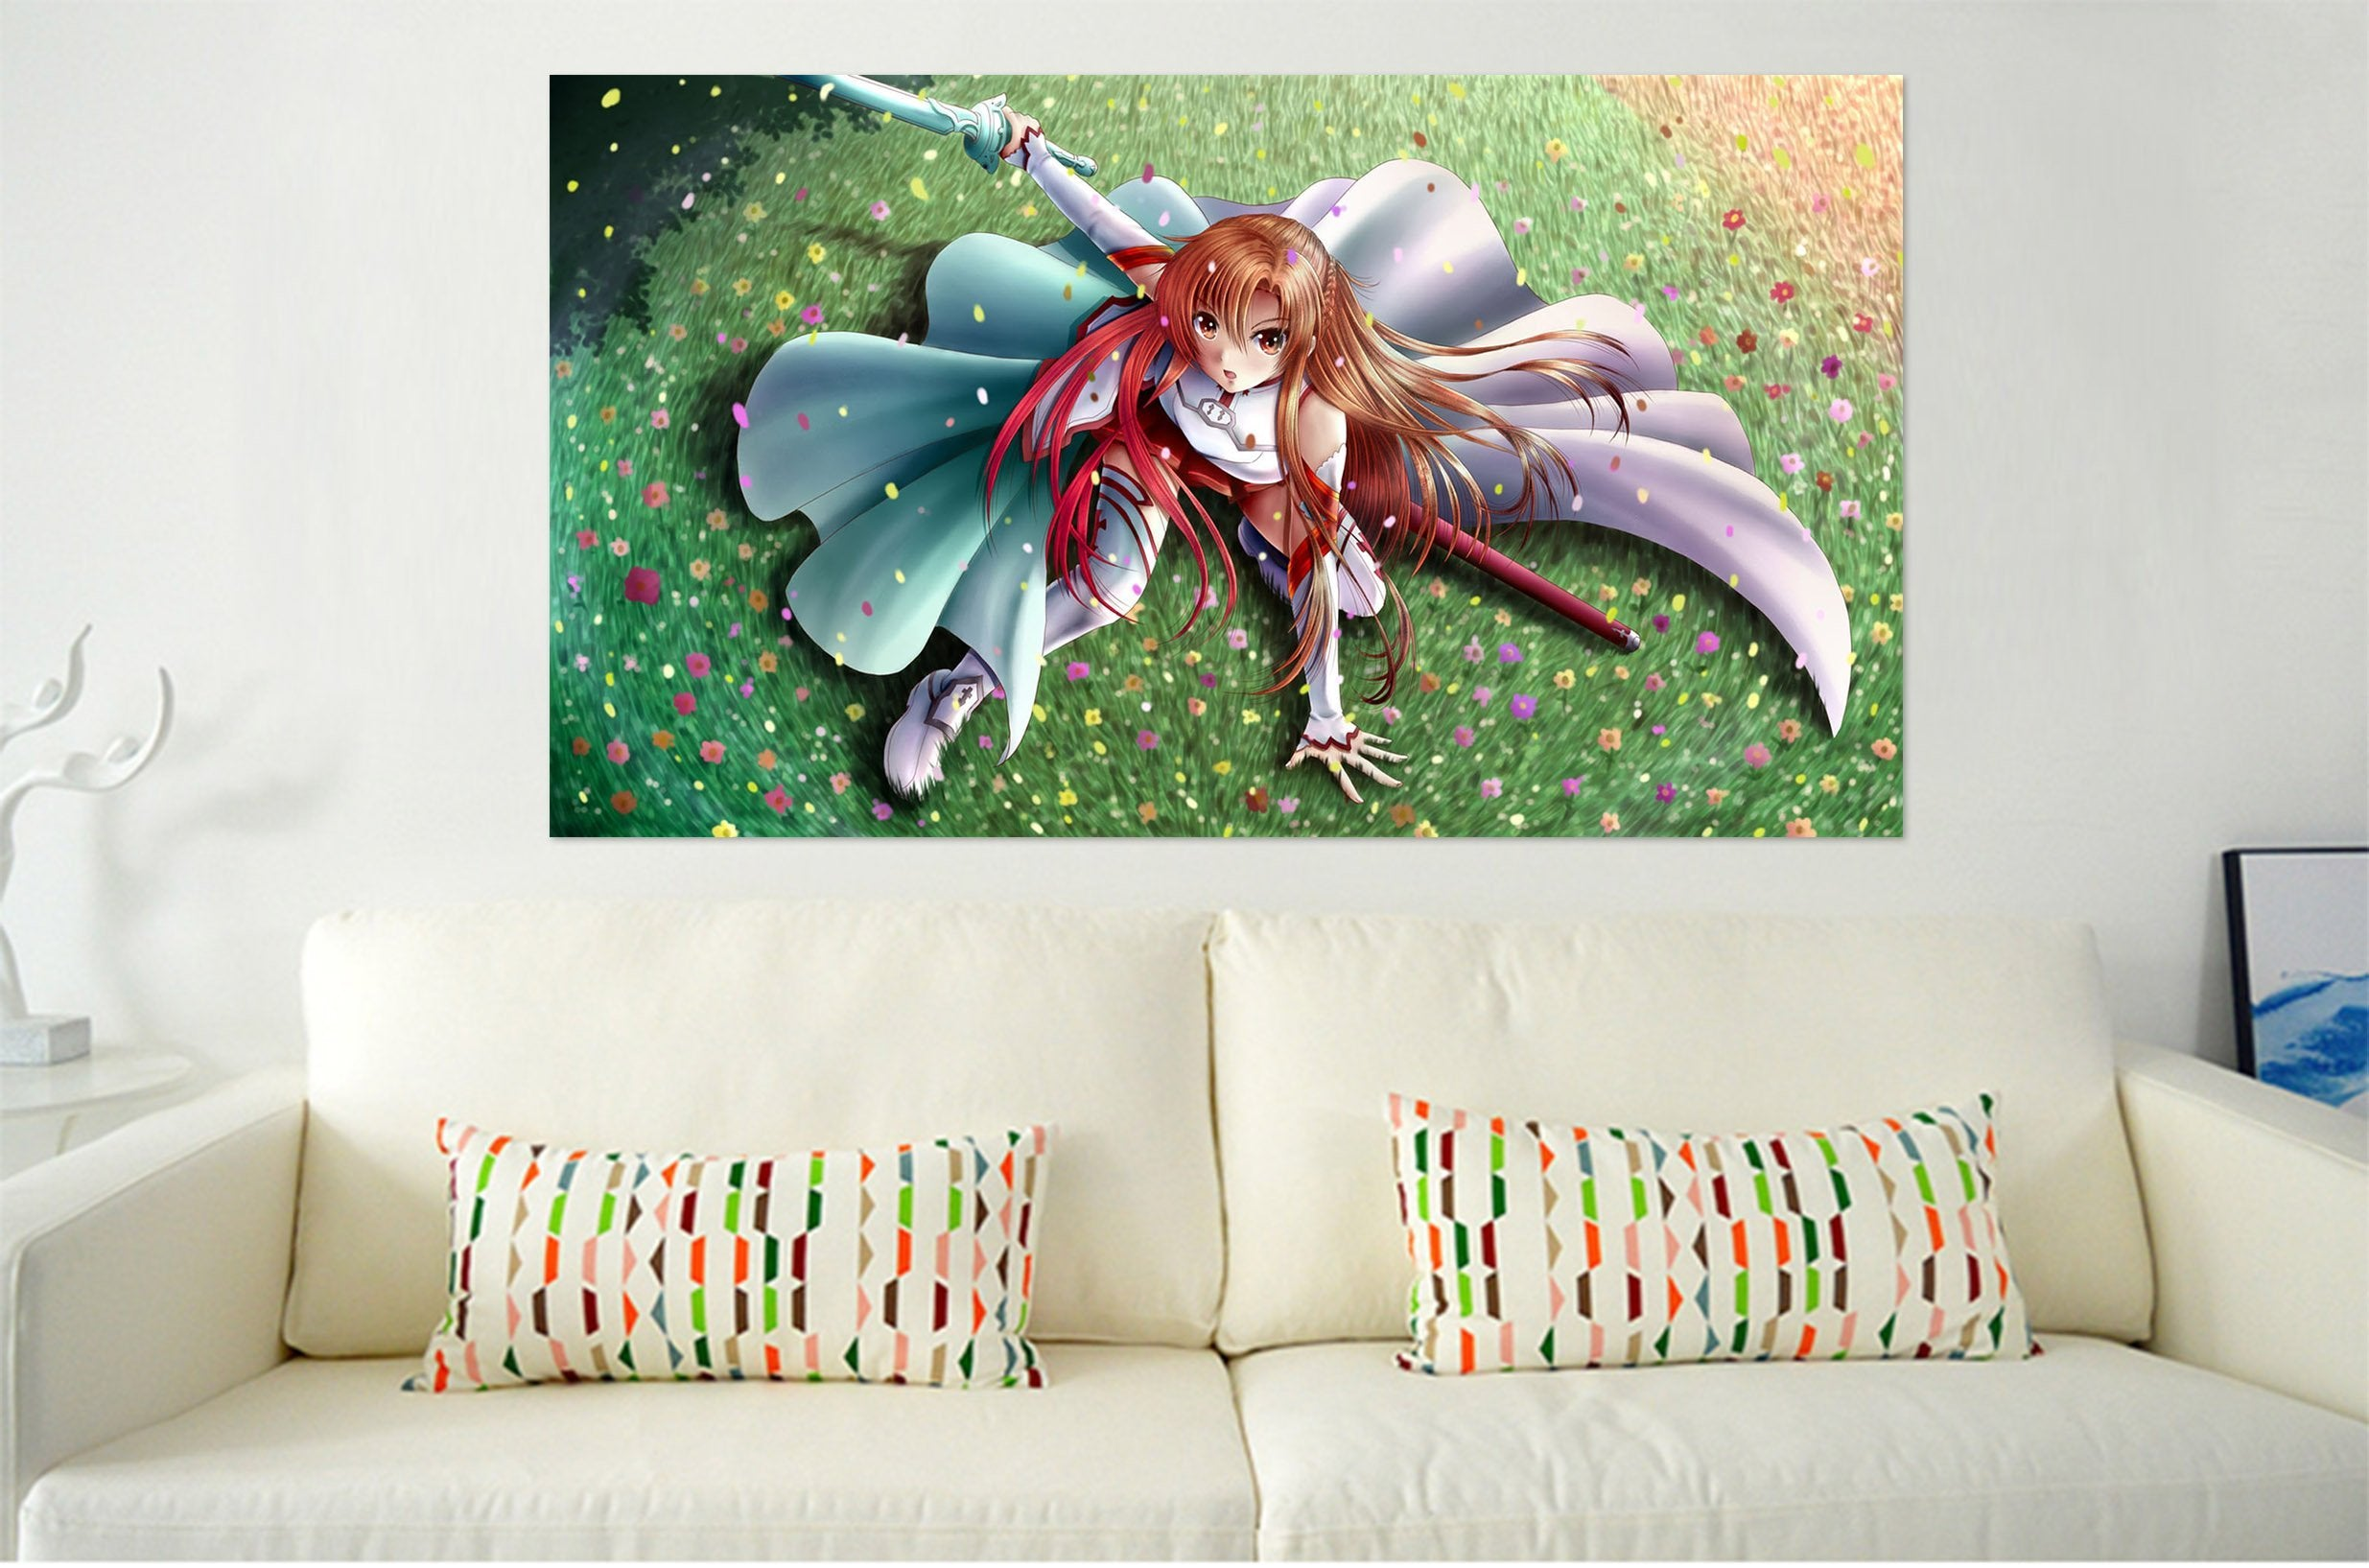 3D Sword Art Online 578 Anime Wall Stickers Wallpaper AJ Wallpaper 2